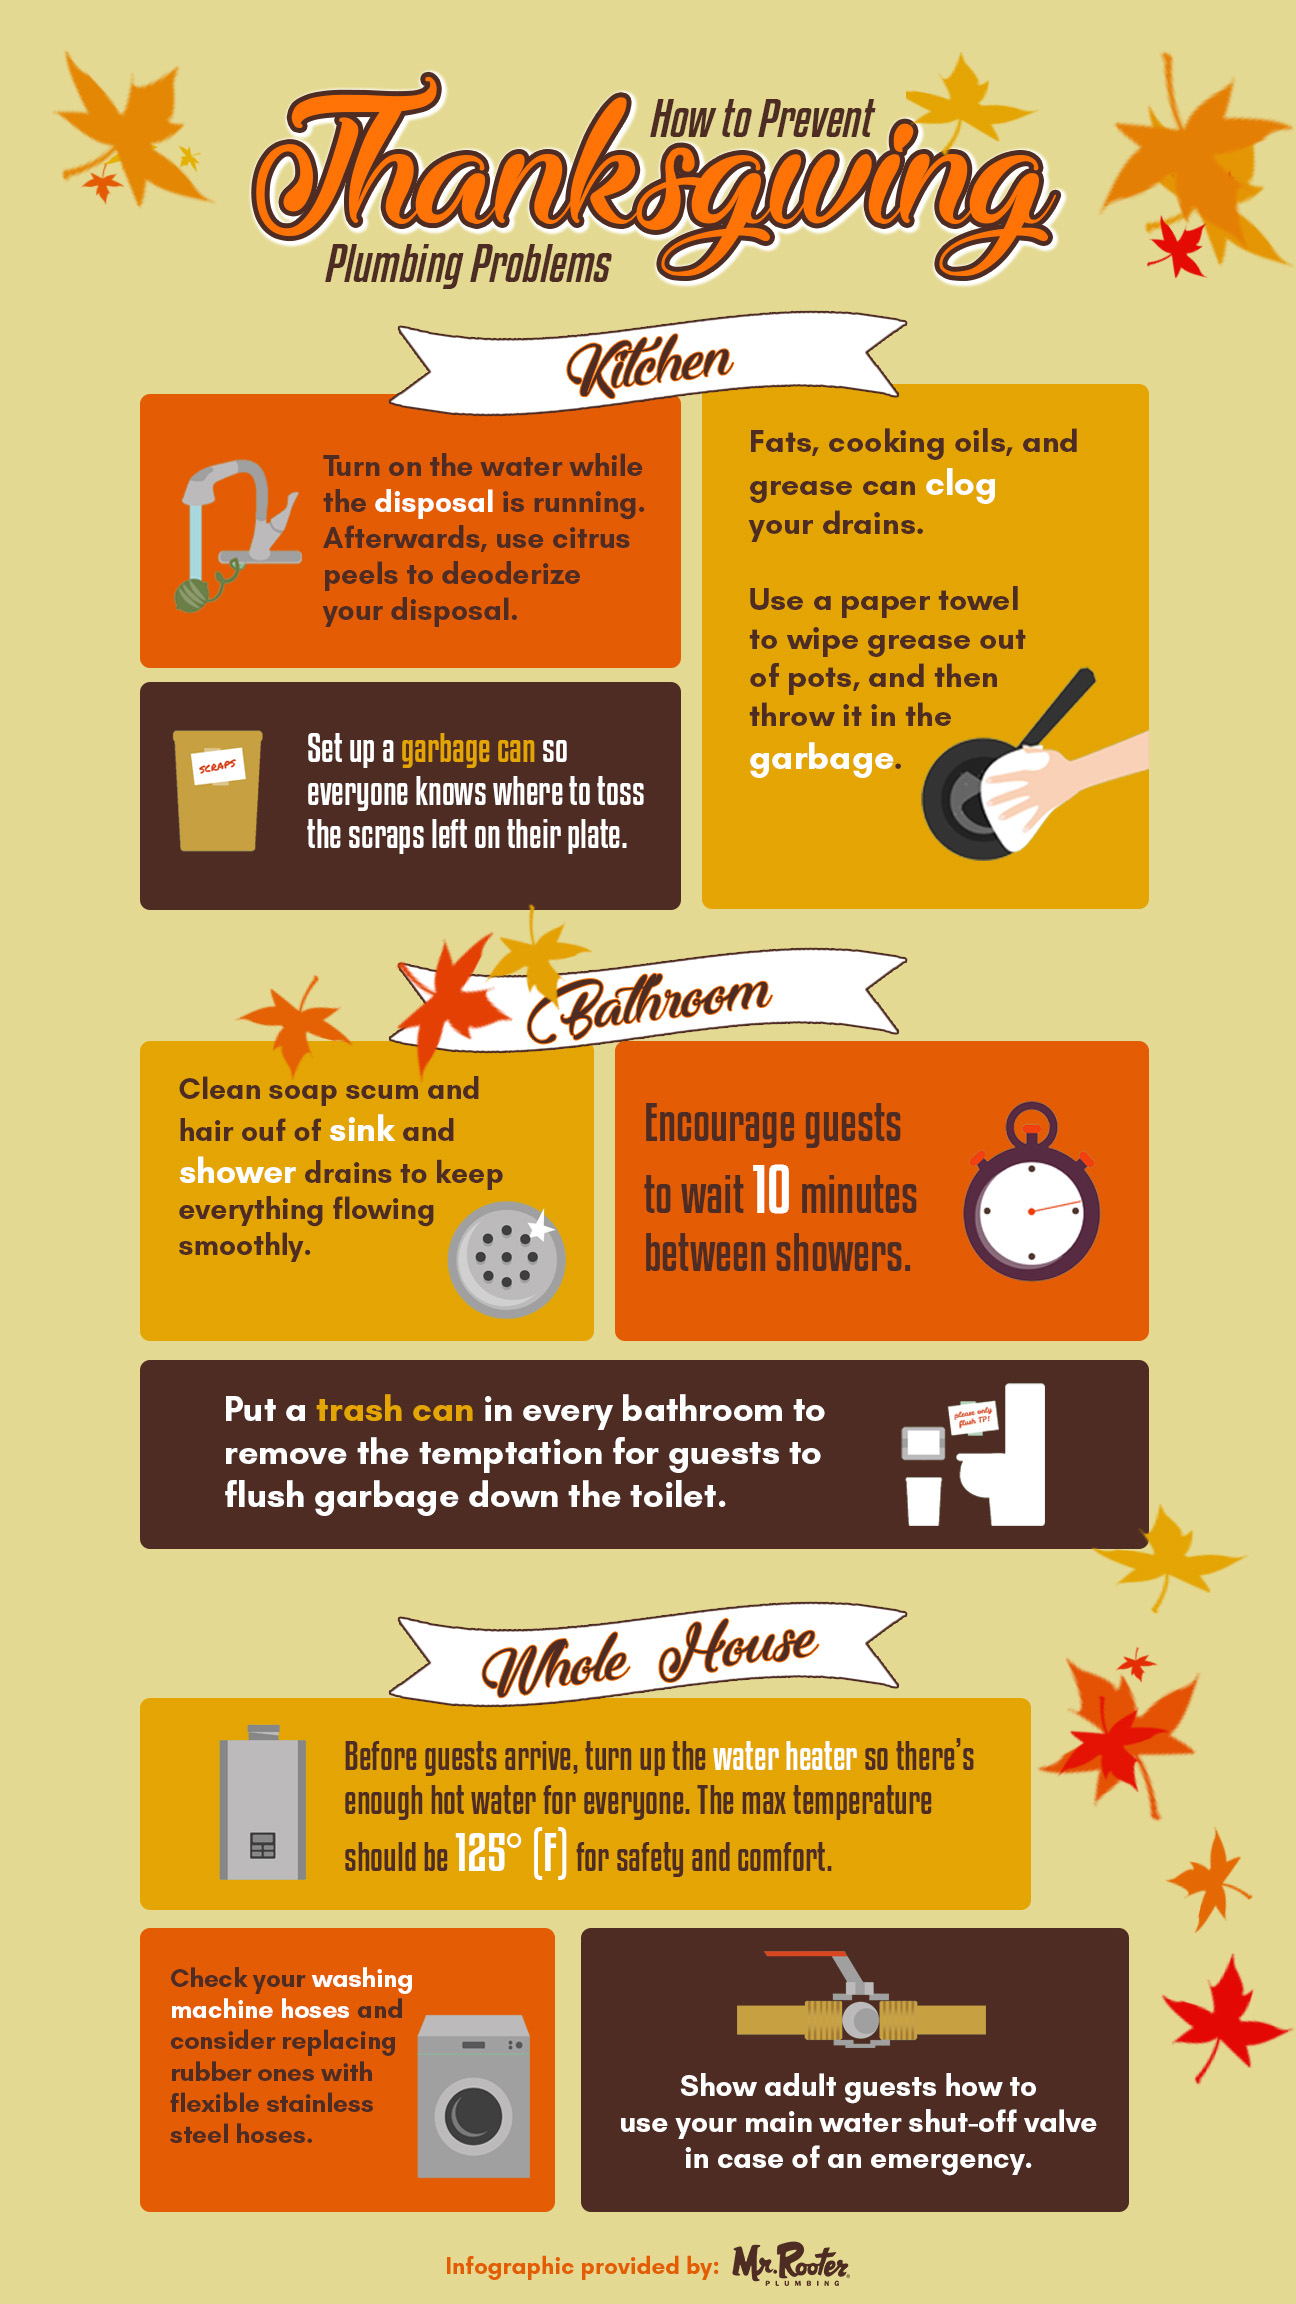 Thanksgiving Plumbing Tips Infographic